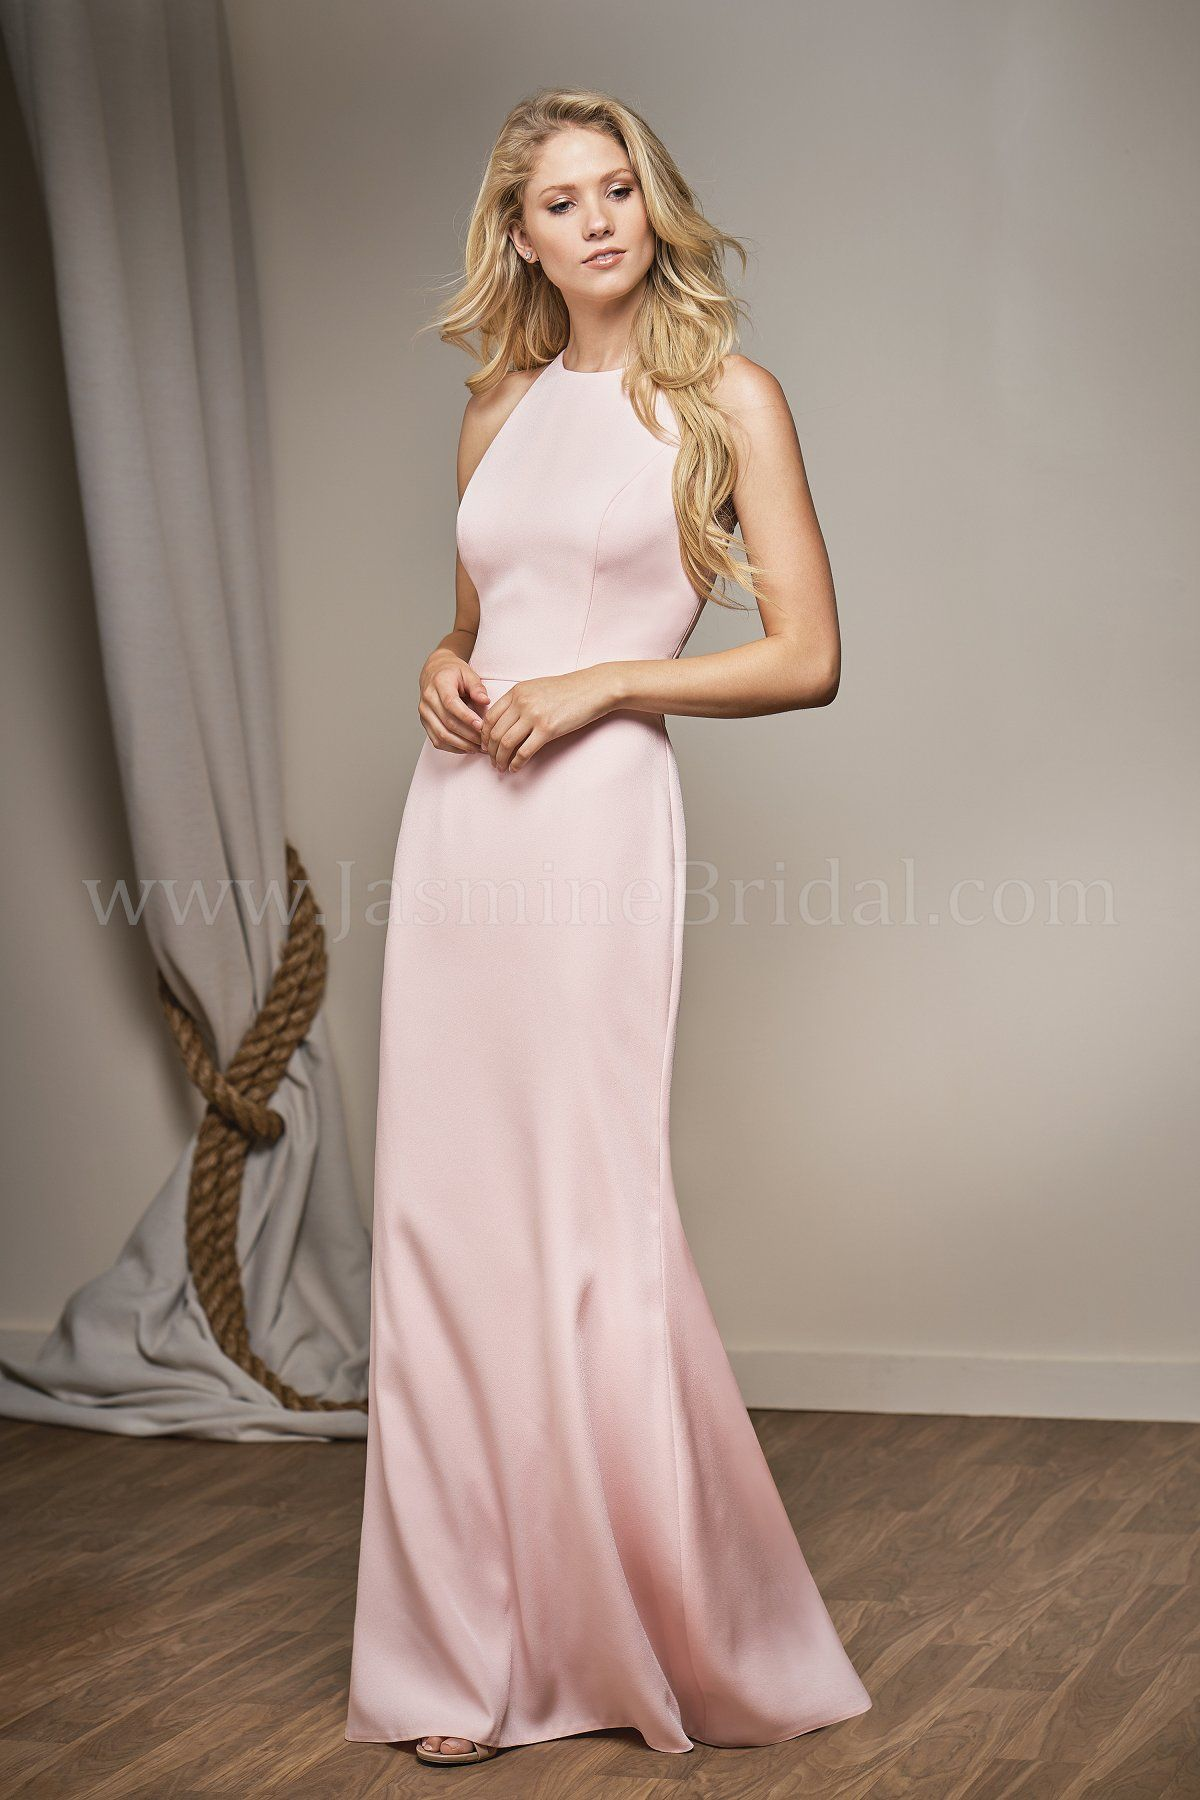 Jasmine bridal belsoie style l204014 in dreamsicle belsoie jasmine bridal belsoie style l204014 in dreamsicle belsoie crepe fit flare bridesmaid ombrellifo Images